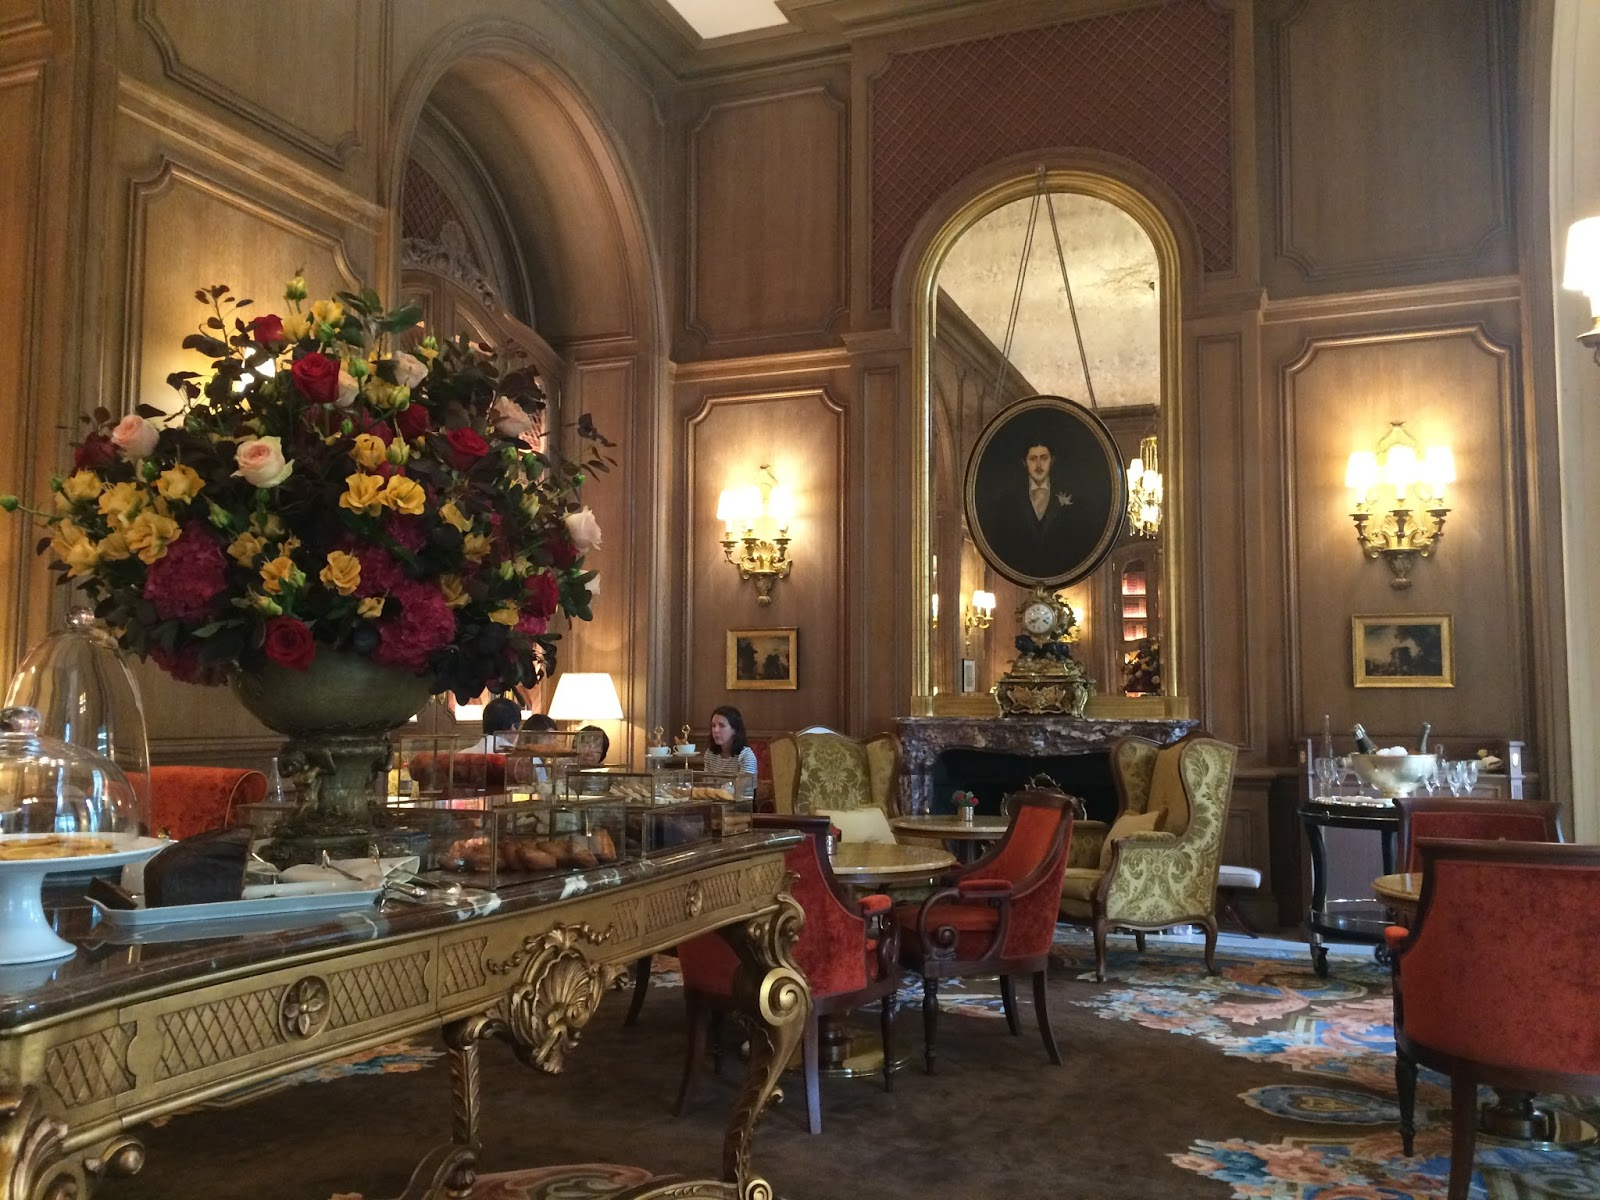 Say oui to paris french afternoon tea at the ritz for Salon cuisine paris